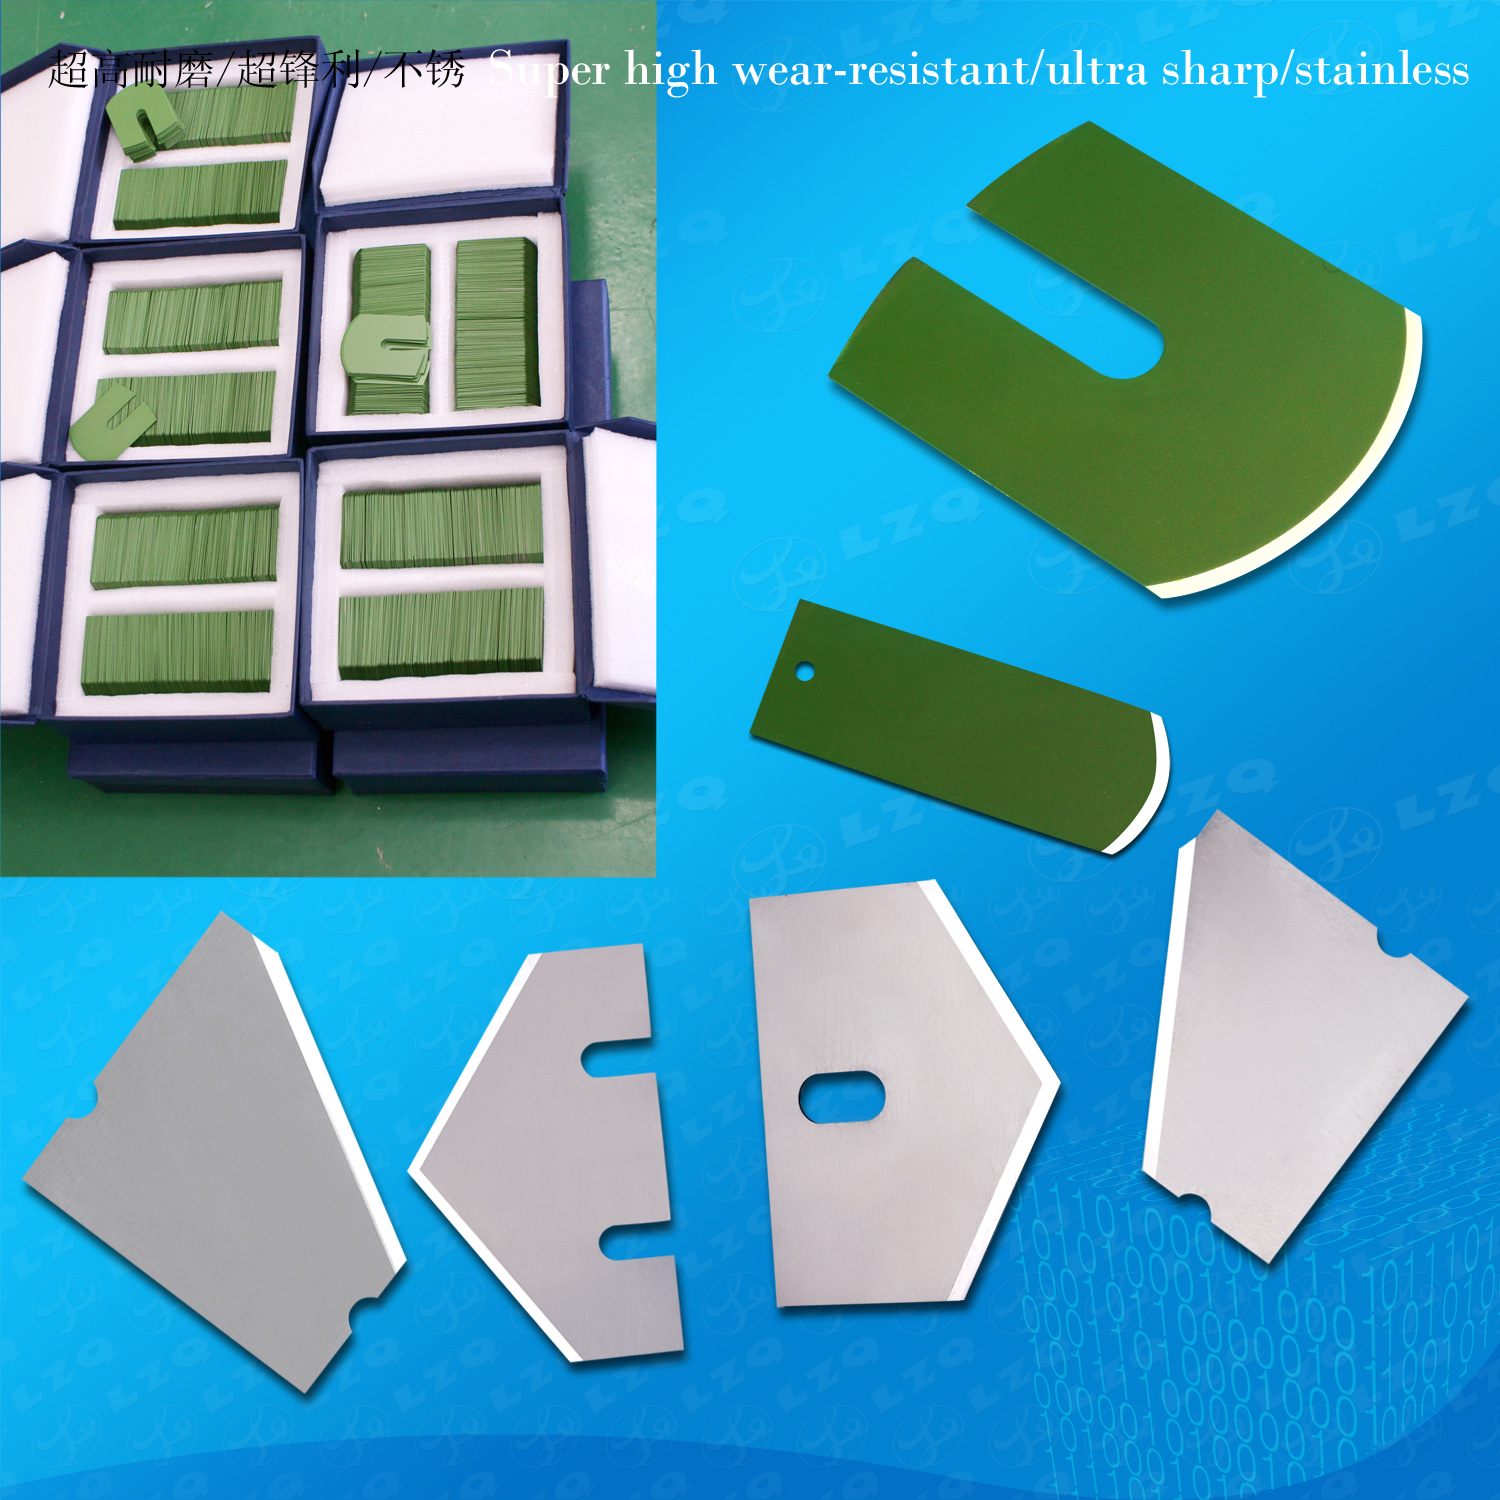 Industrial Sewing Machine Blades, Cutting Machine Blade, Computer Embroidery Machine Knives